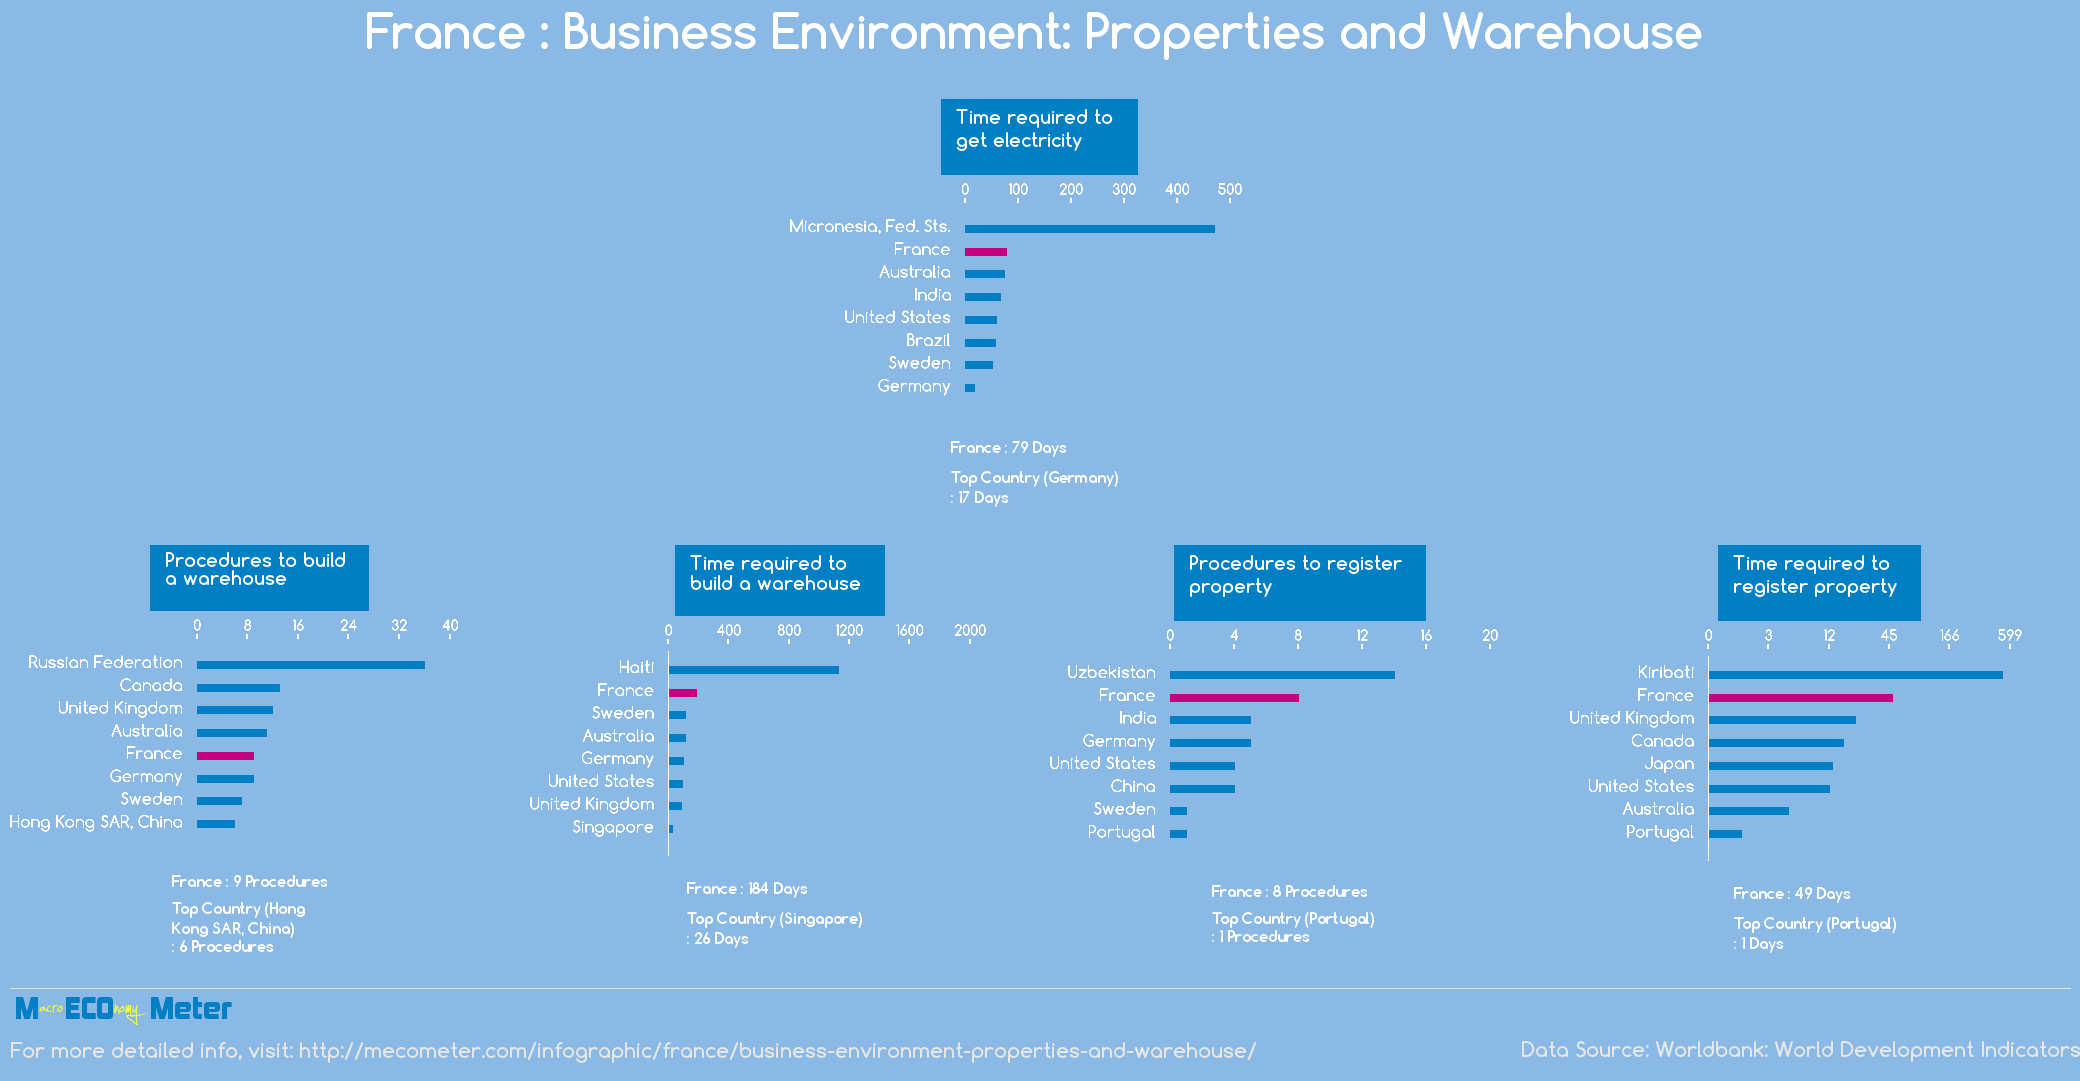 France : Business Environment: Properties and Warehouse